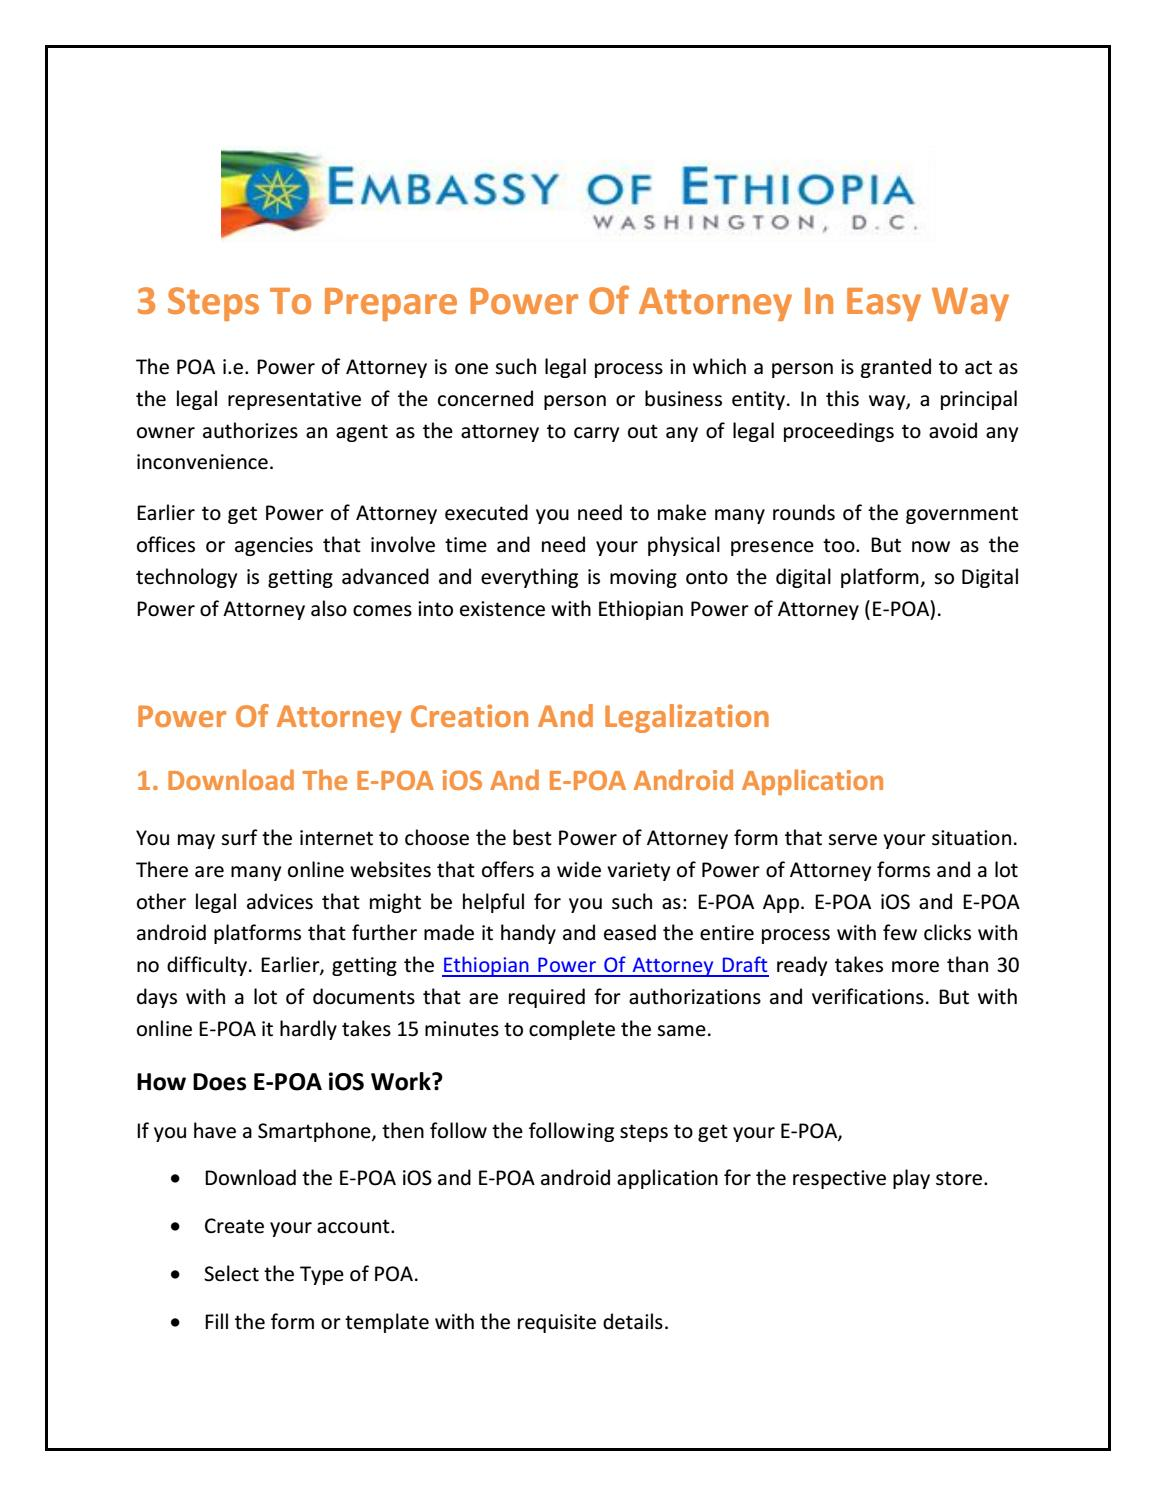 power of attorney form ethiopian embassy  Ethiopian Power Of Attorney App by ethiopianepoa - issuu